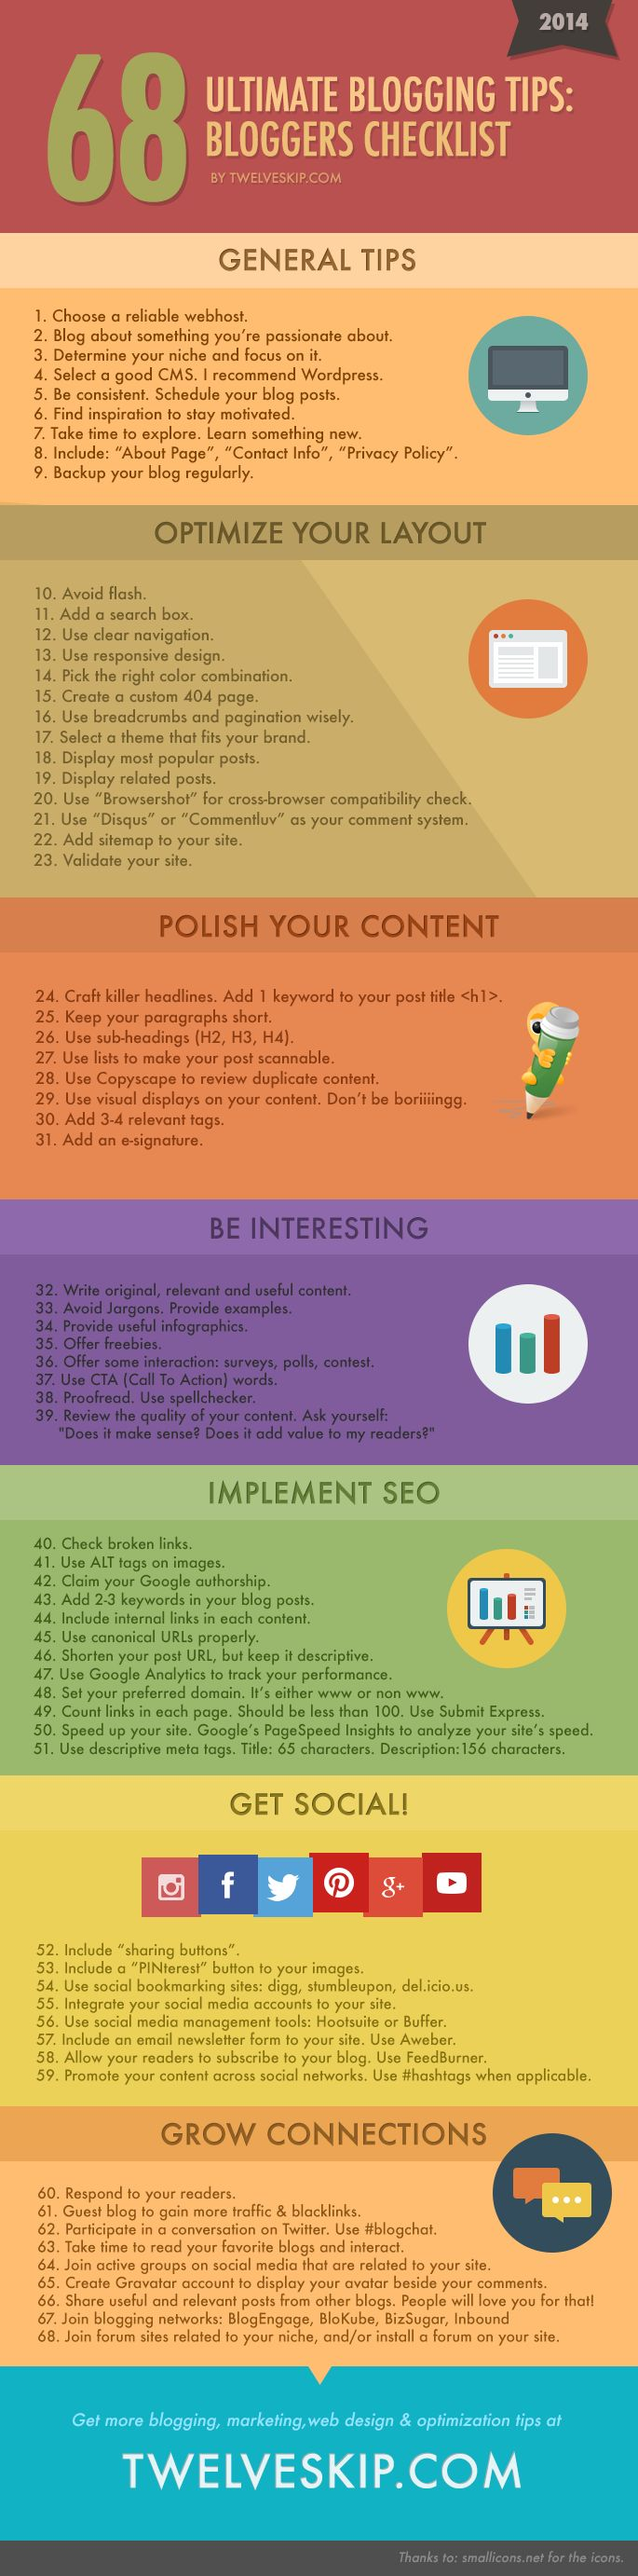 68 Ultimate Blogging Tips. This is a great blogging idea.